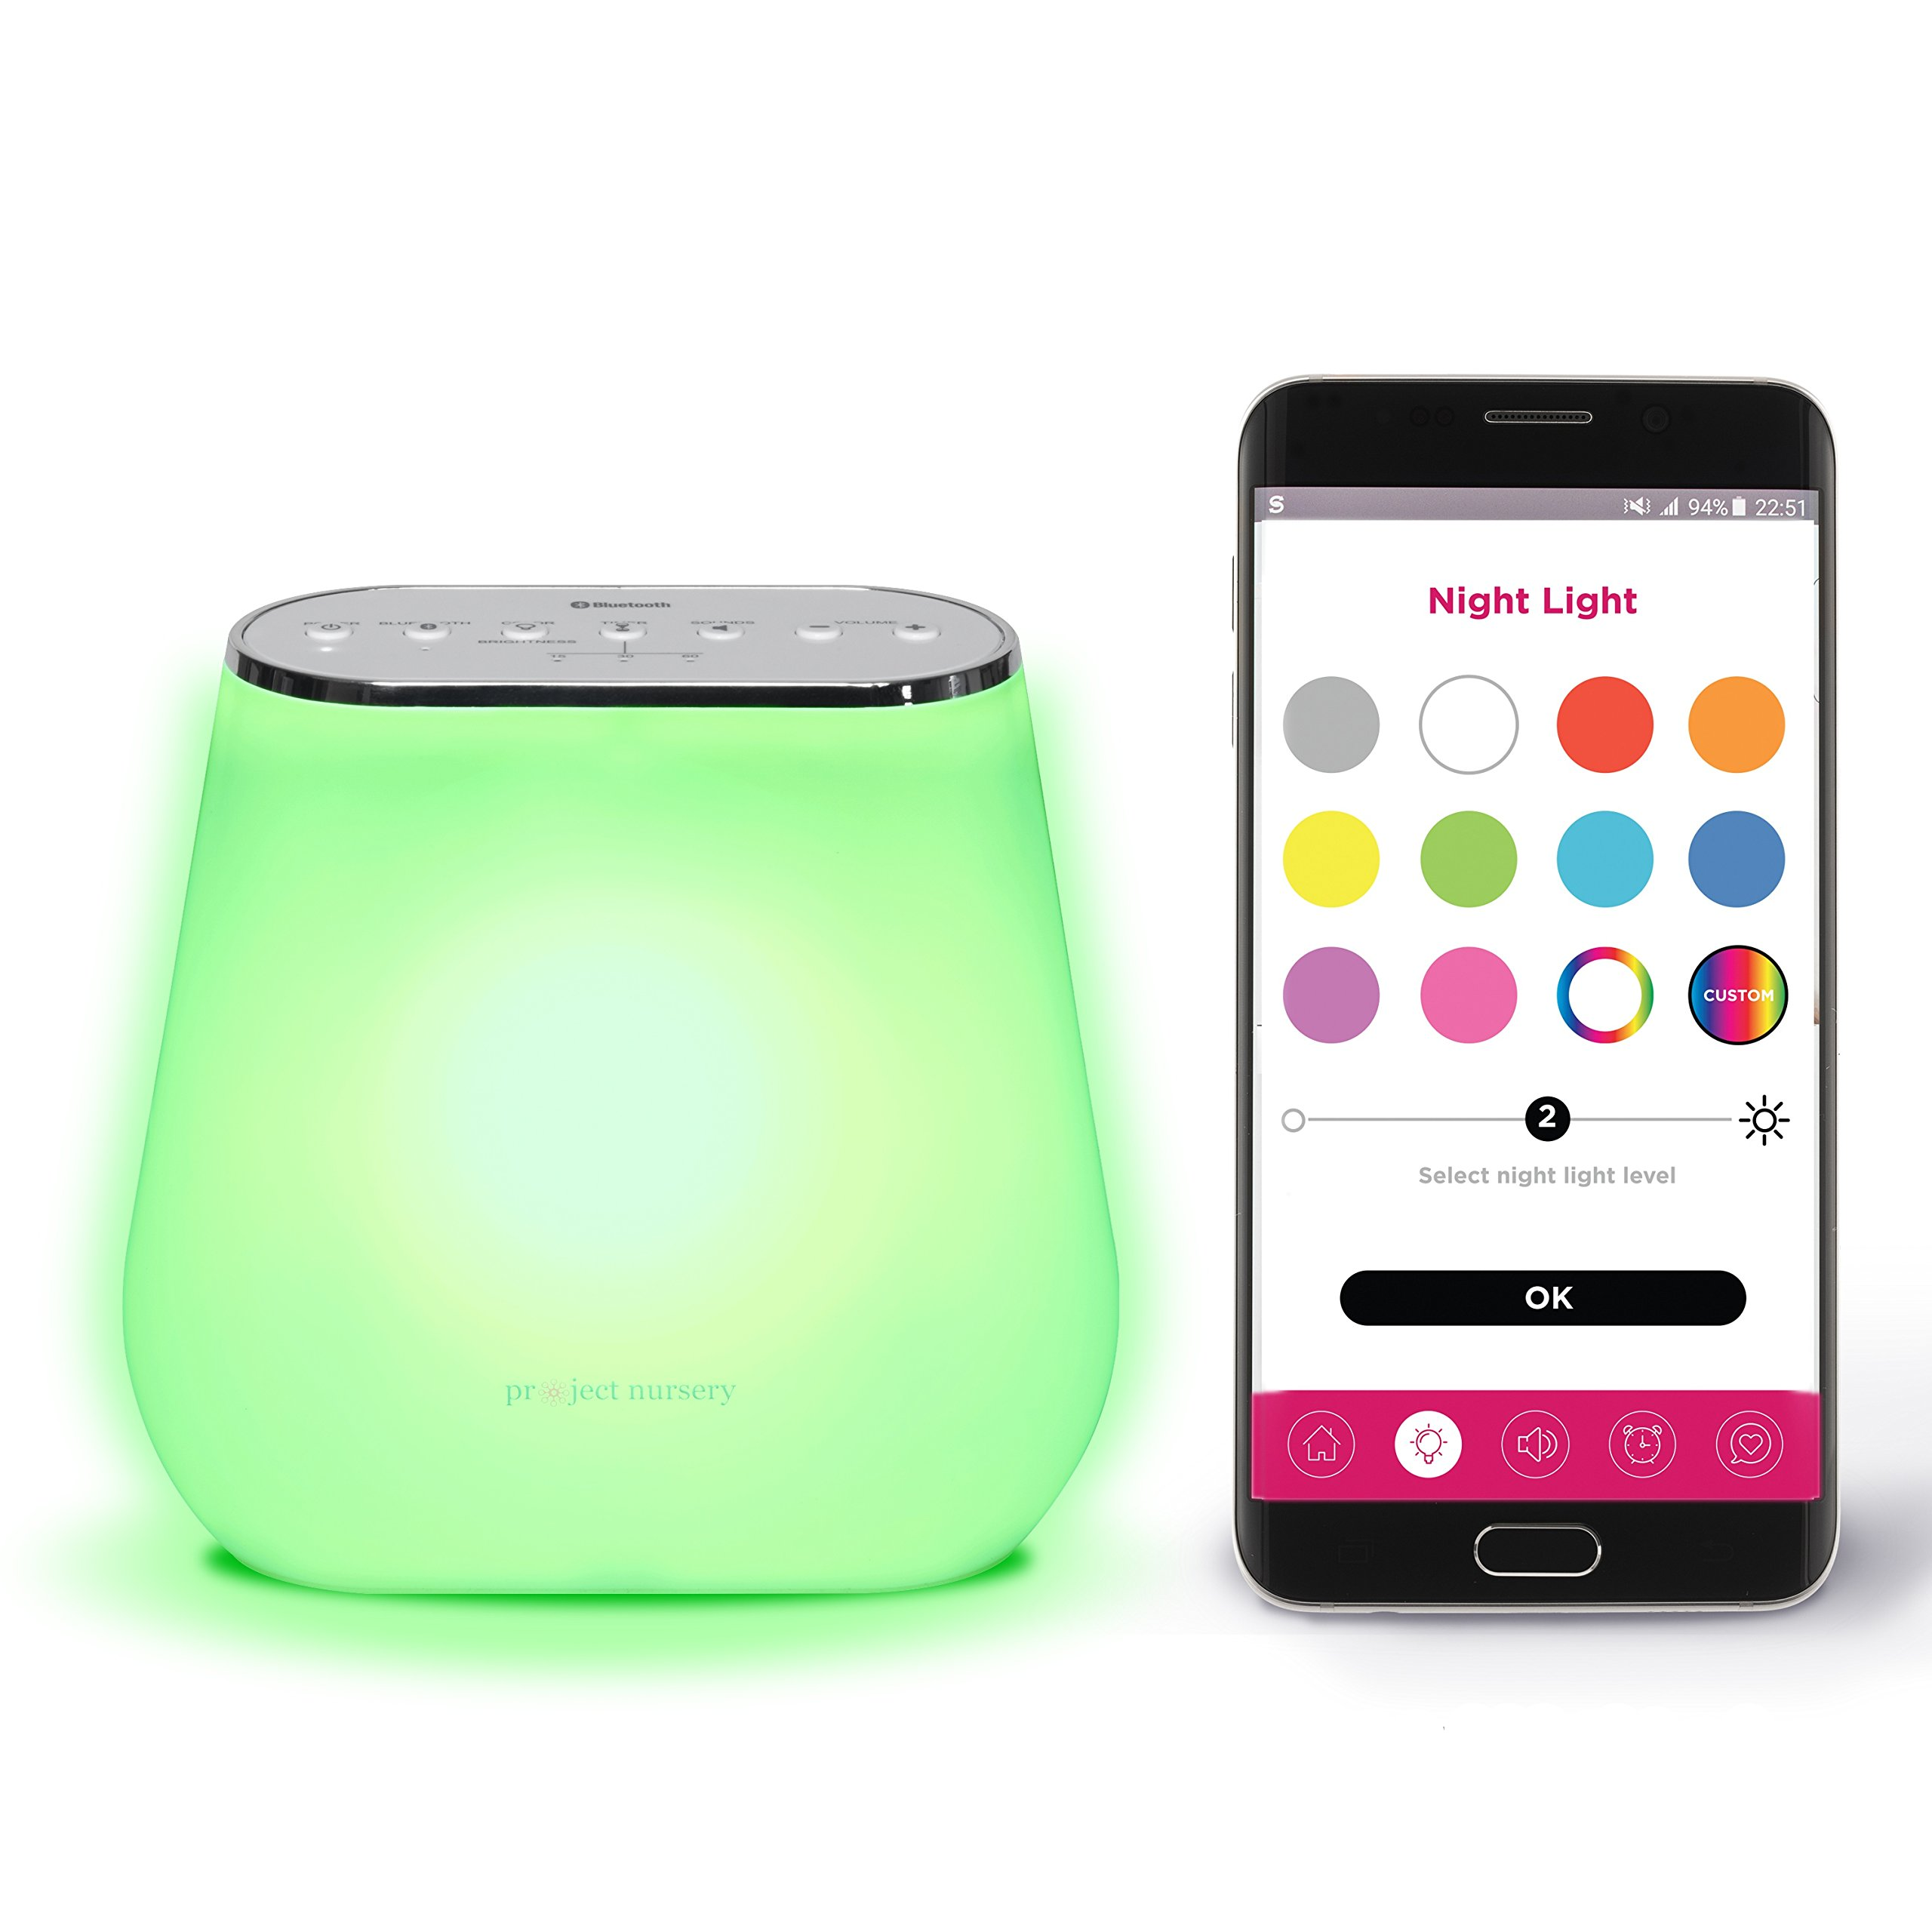 Alexa Enabled Smart Sound Soother with Multi-Color Night Light for Children and Ok-to-Wake Feature, by Project Nursery